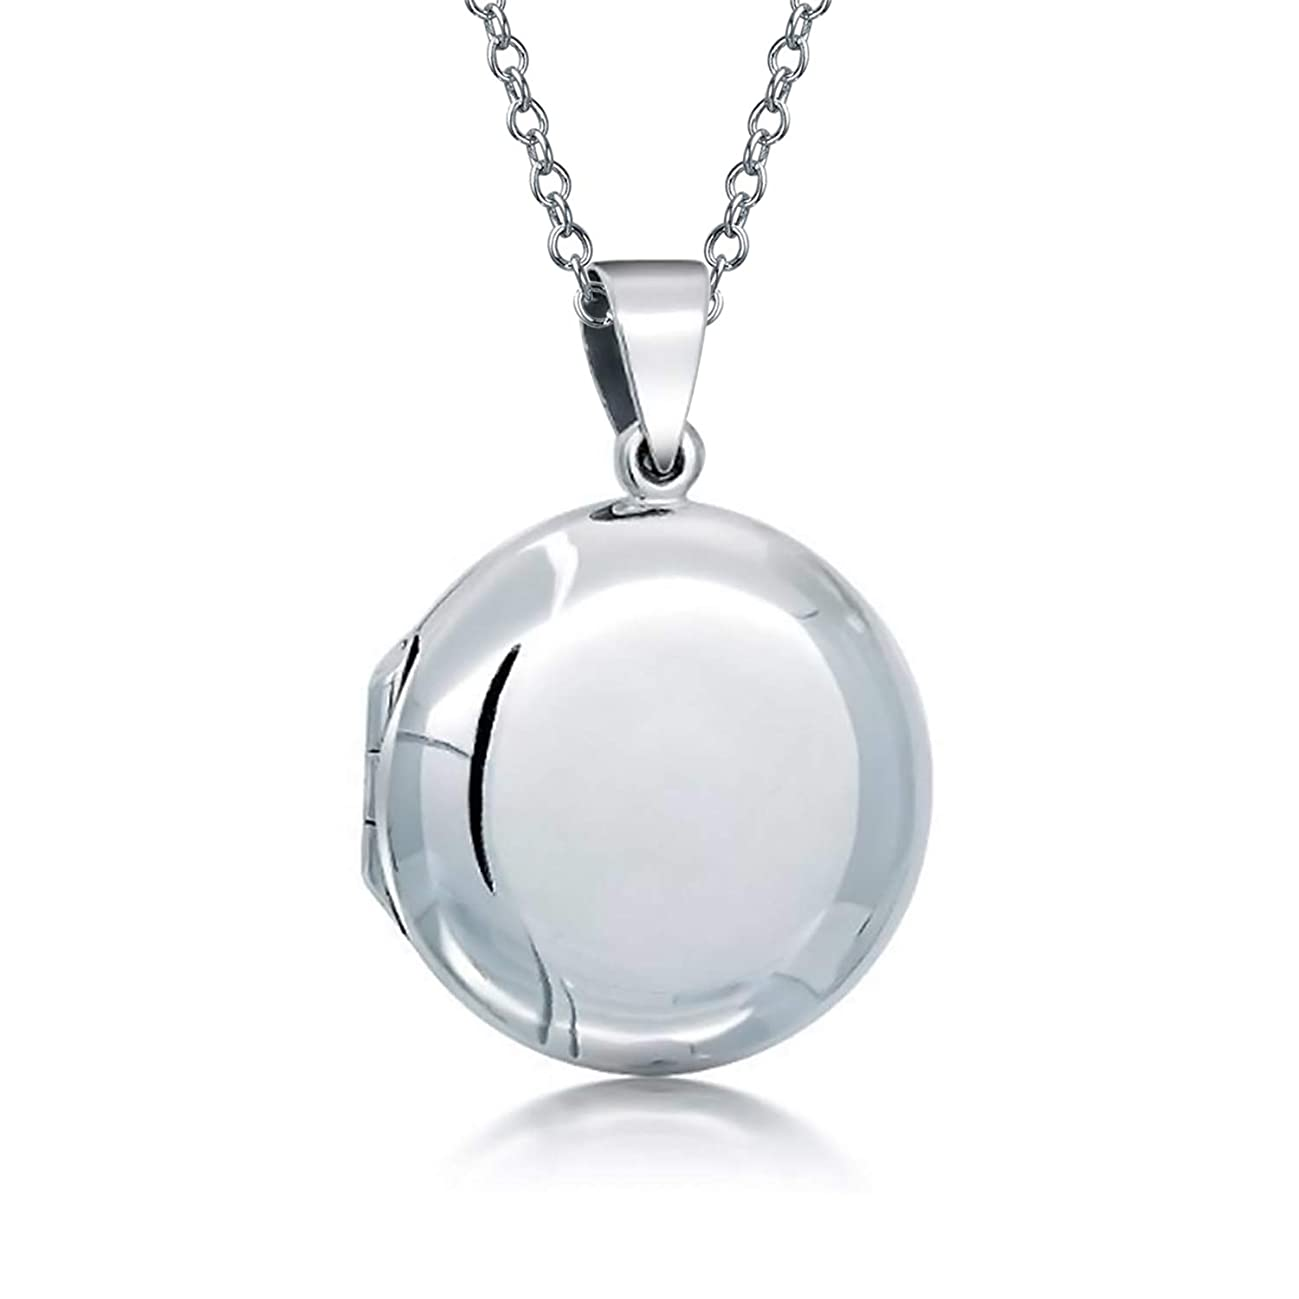 Basic High Polish Round Locket Pendant Engravable 925 Sterling Silver Necklace For Women